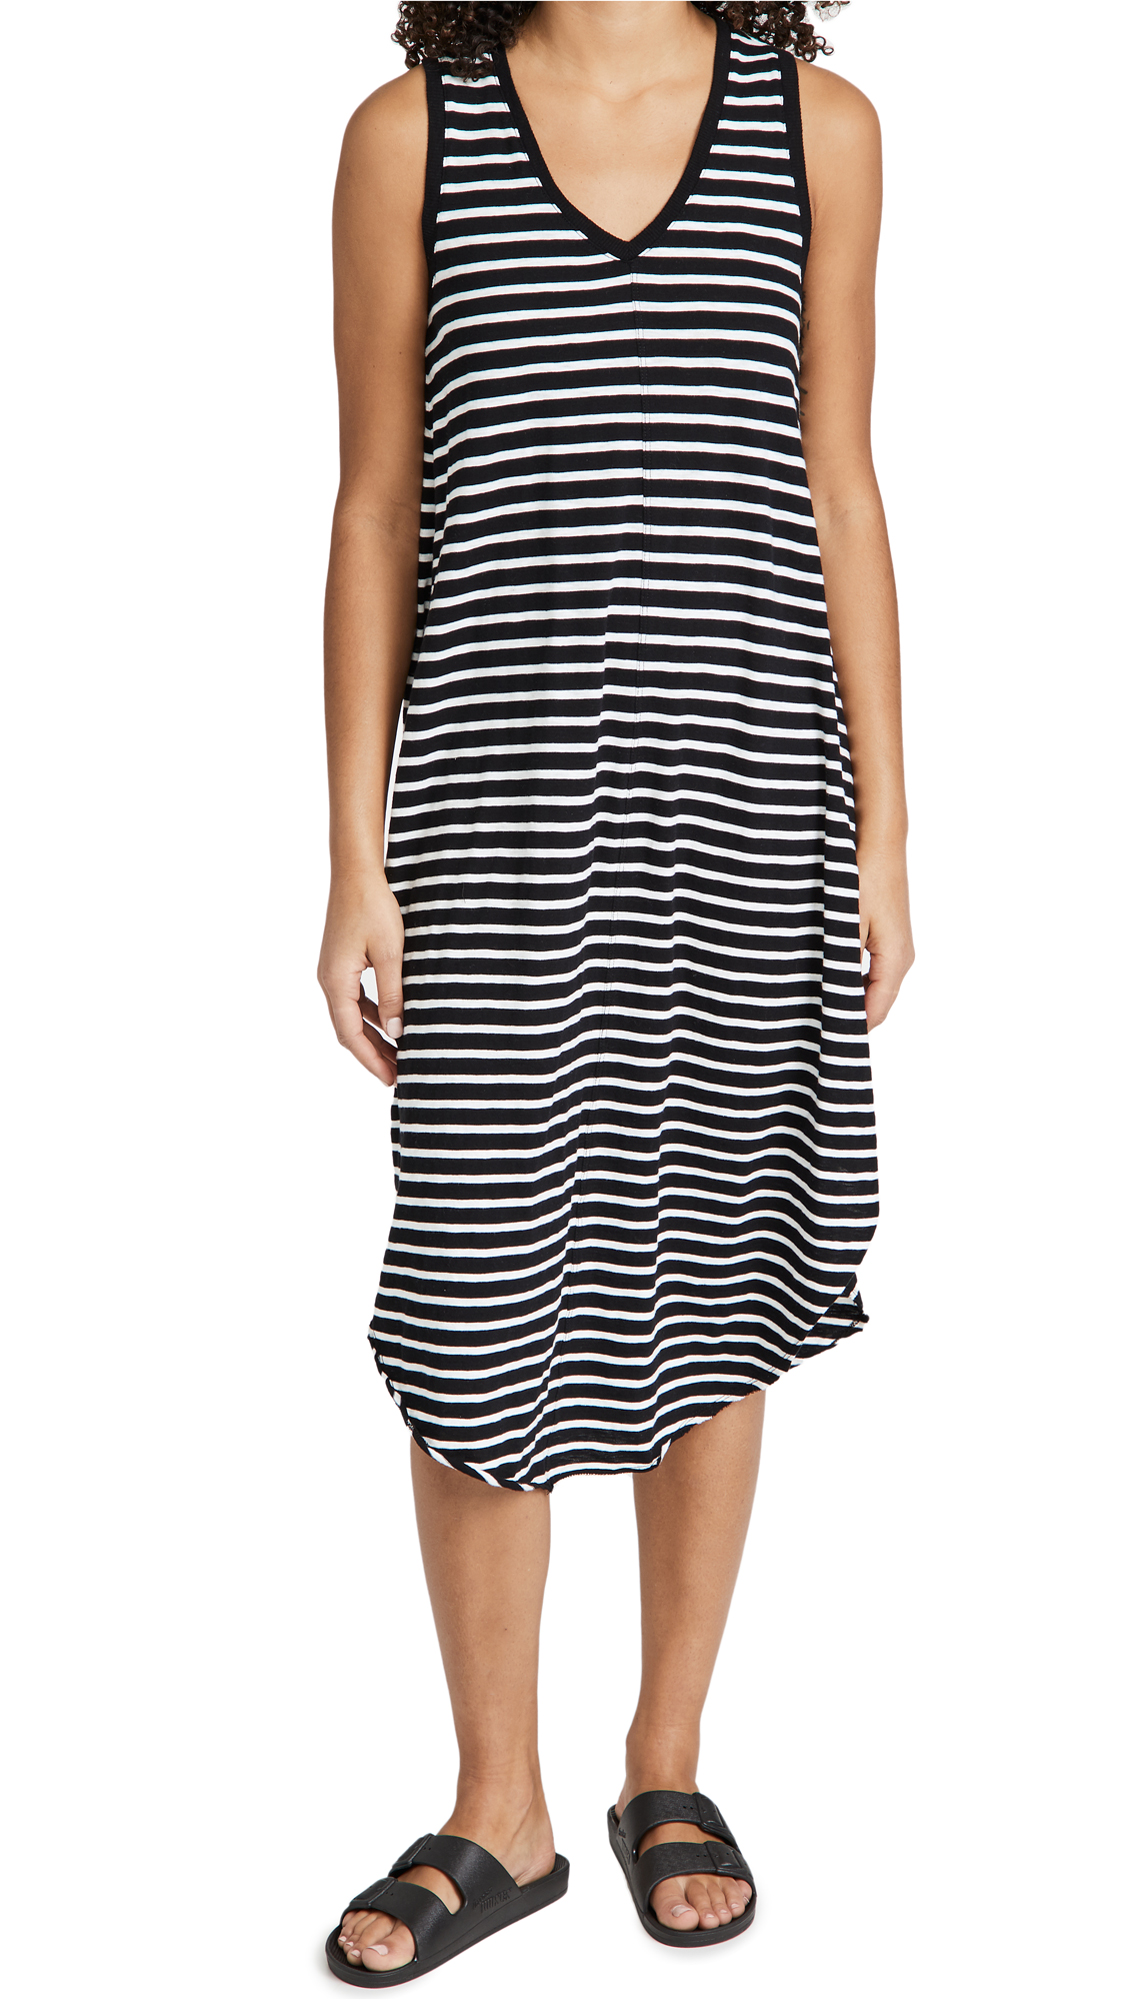 Z Supply Stripe Reverie Dress